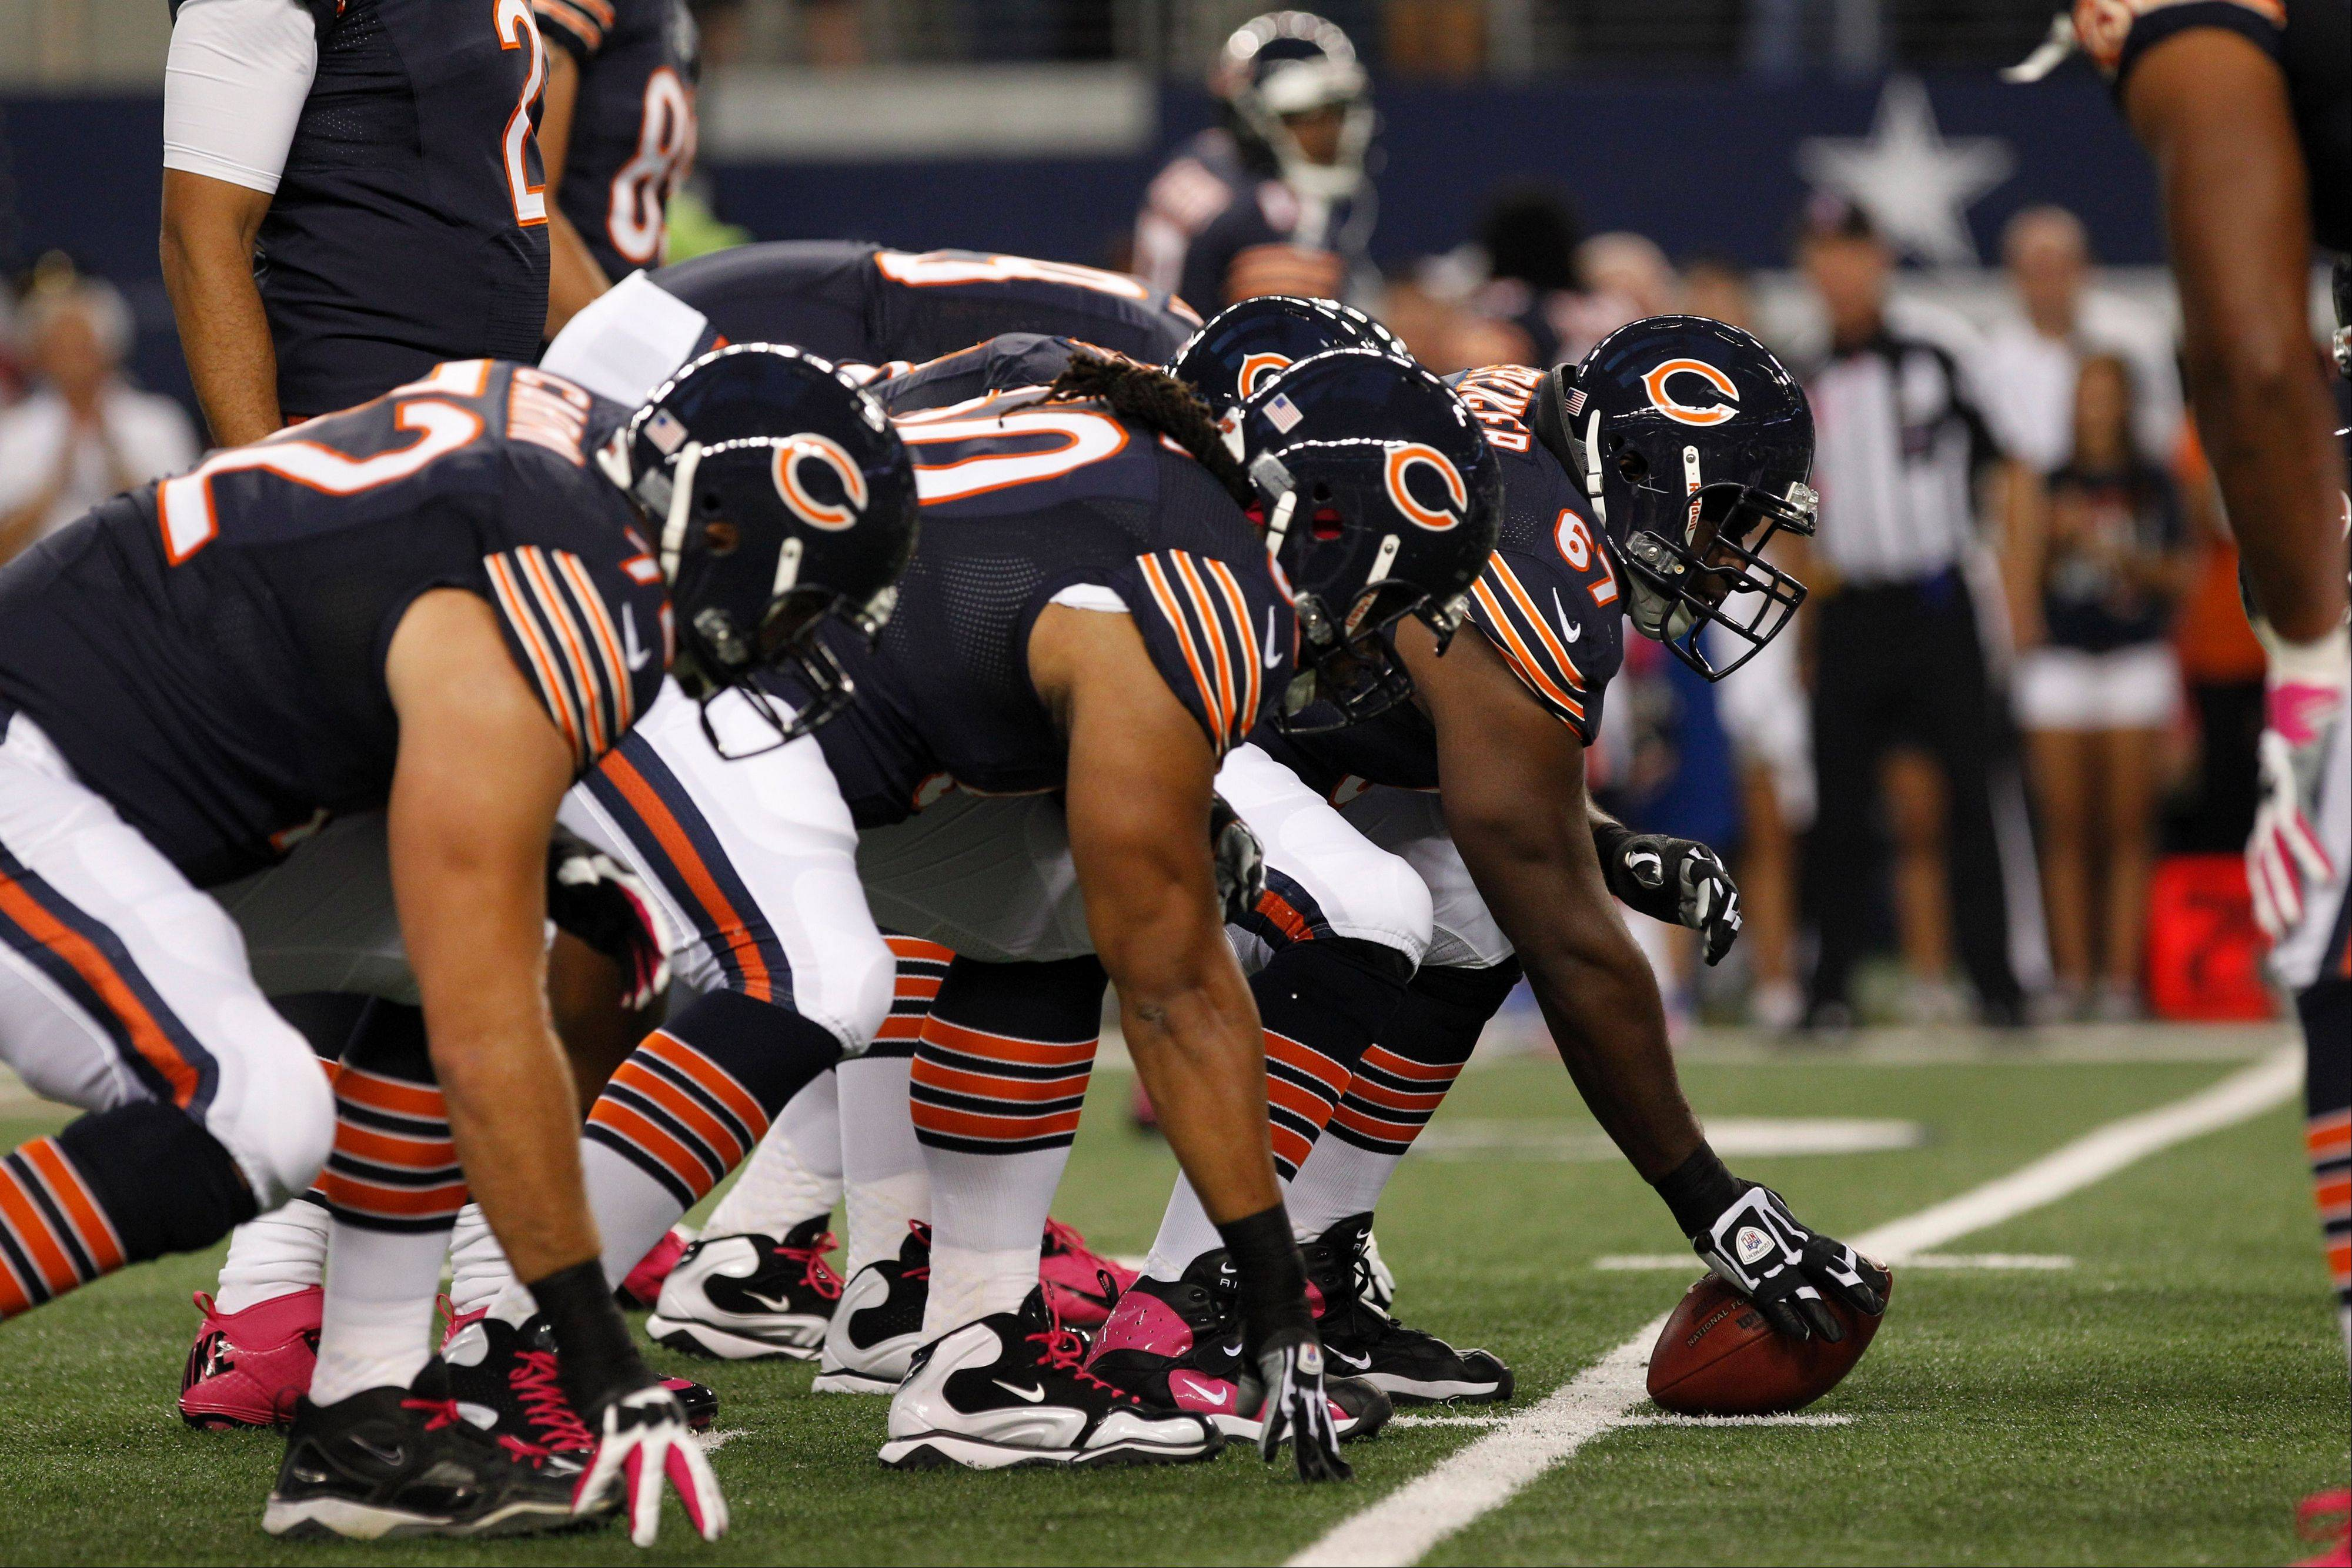 The Bears offensive line will have at least one change on Sunday with left guard Chilo Rachal ruled out. More changes also are possible.